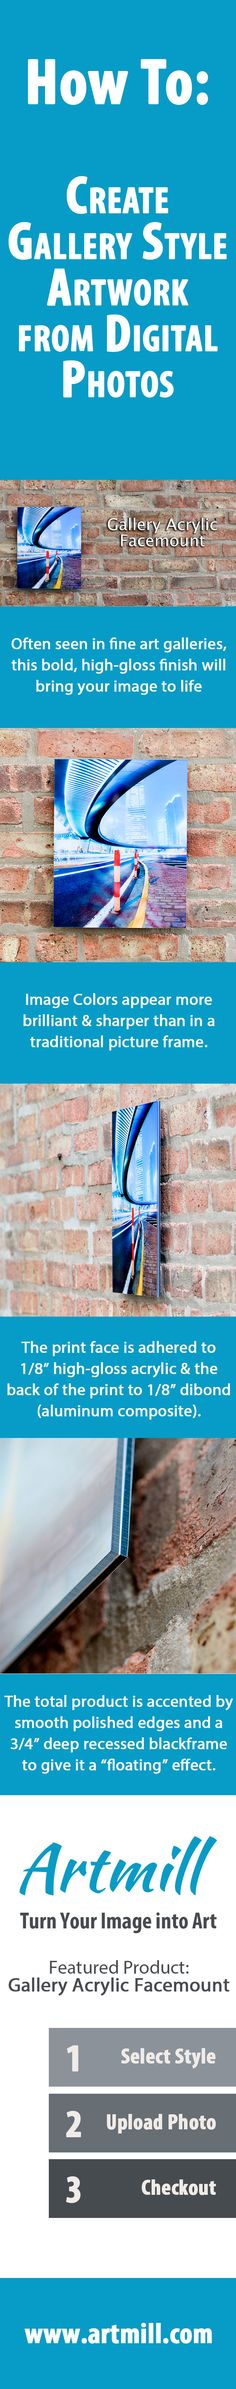 How to: Create Gallery Style Artwork from Digital Photos